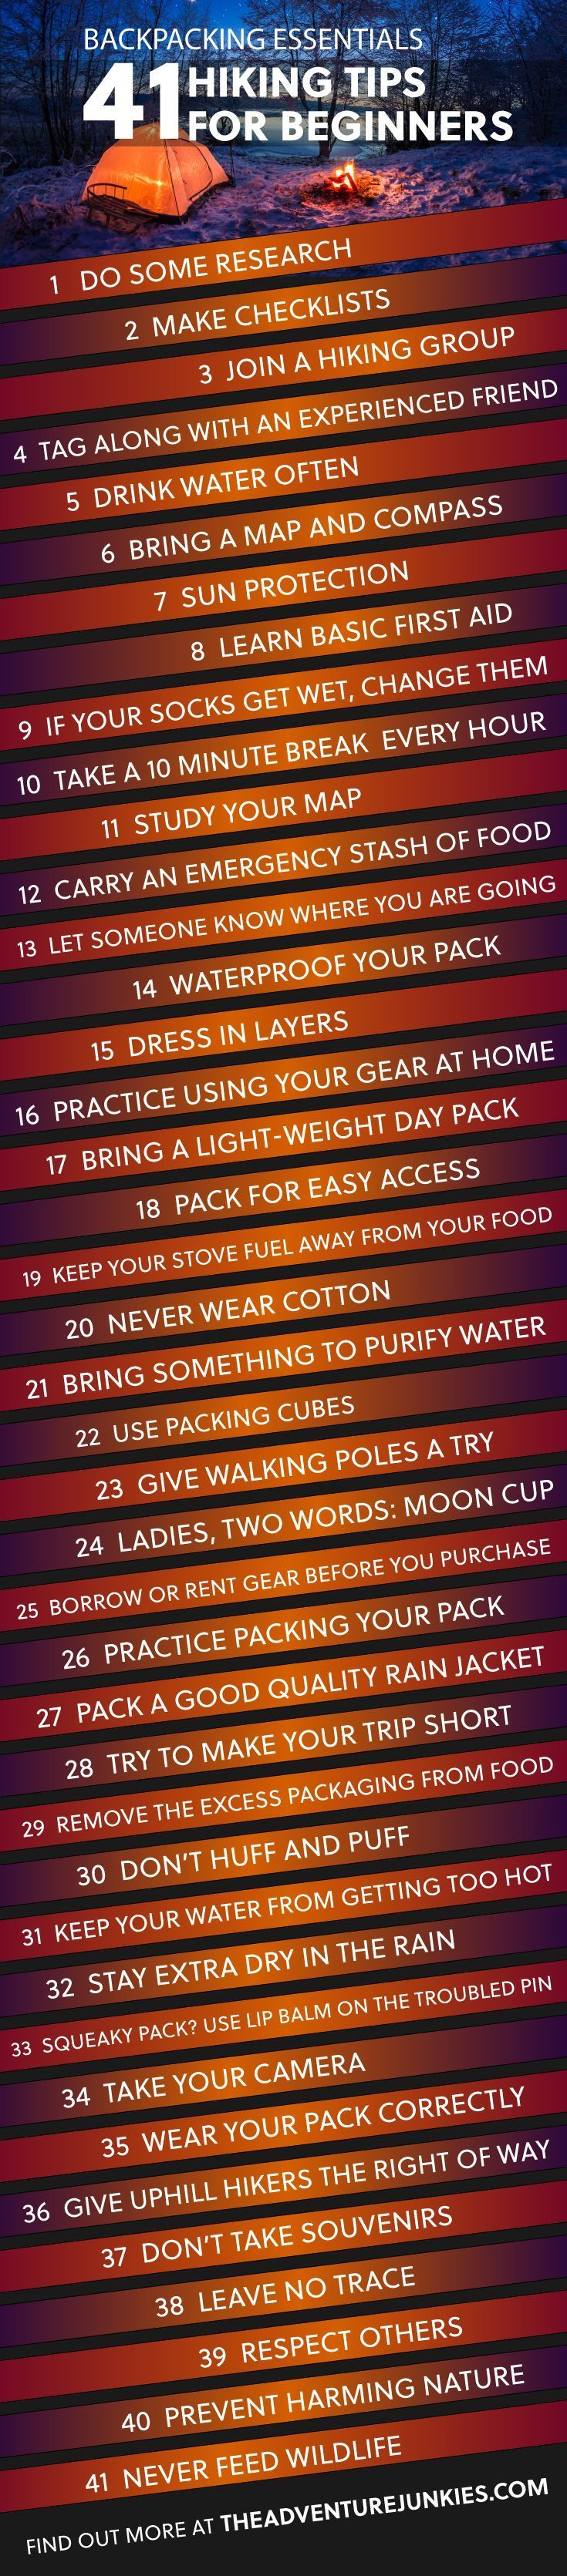 Photo of Backpacking Essentials: 41 Hiking Tips For Beginners